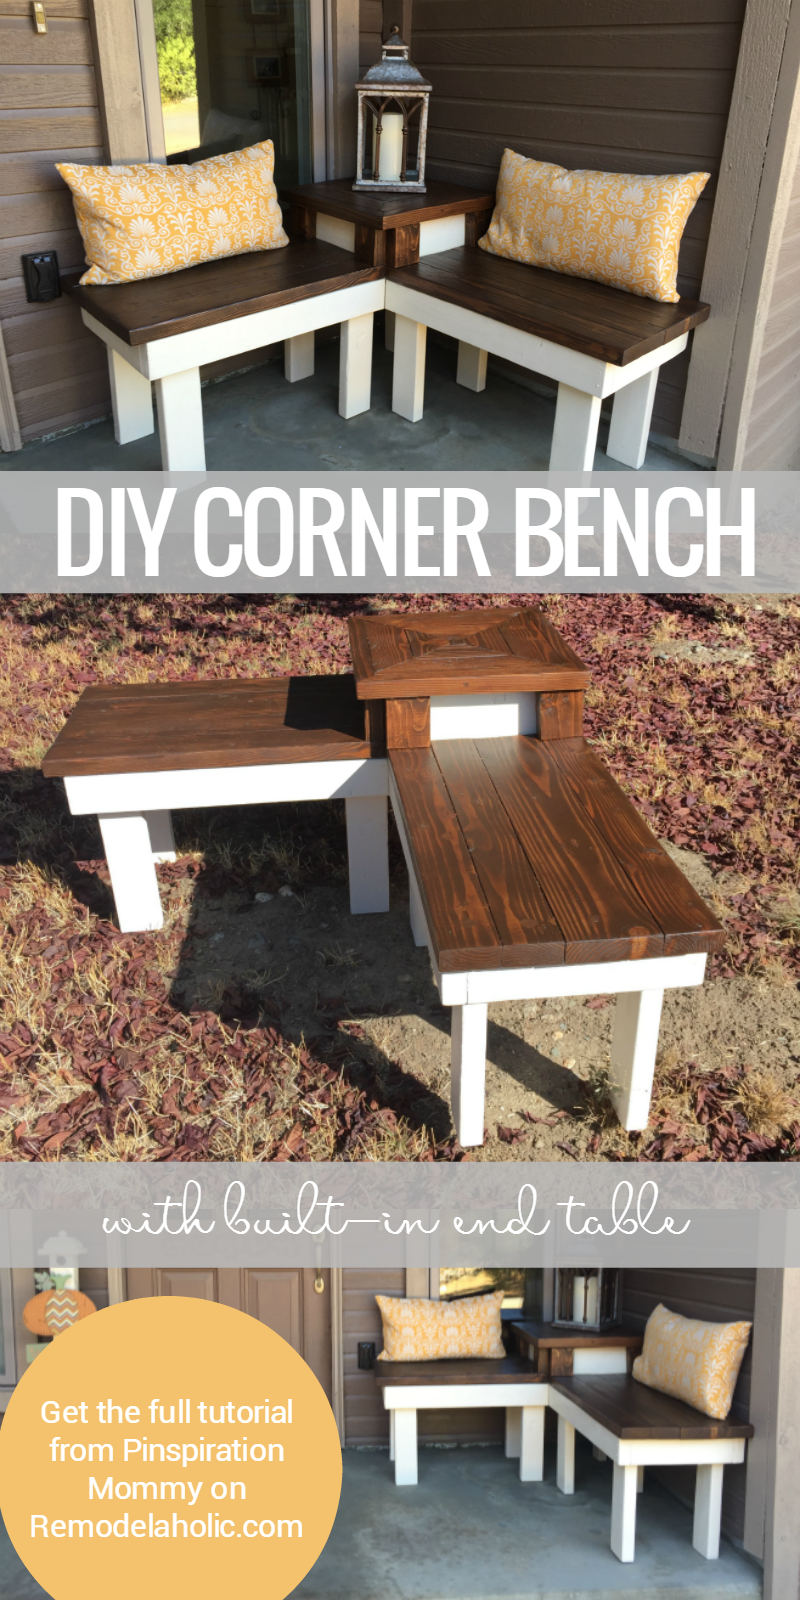 Remodelaholic | Build a Corner Bench with Built-in Table